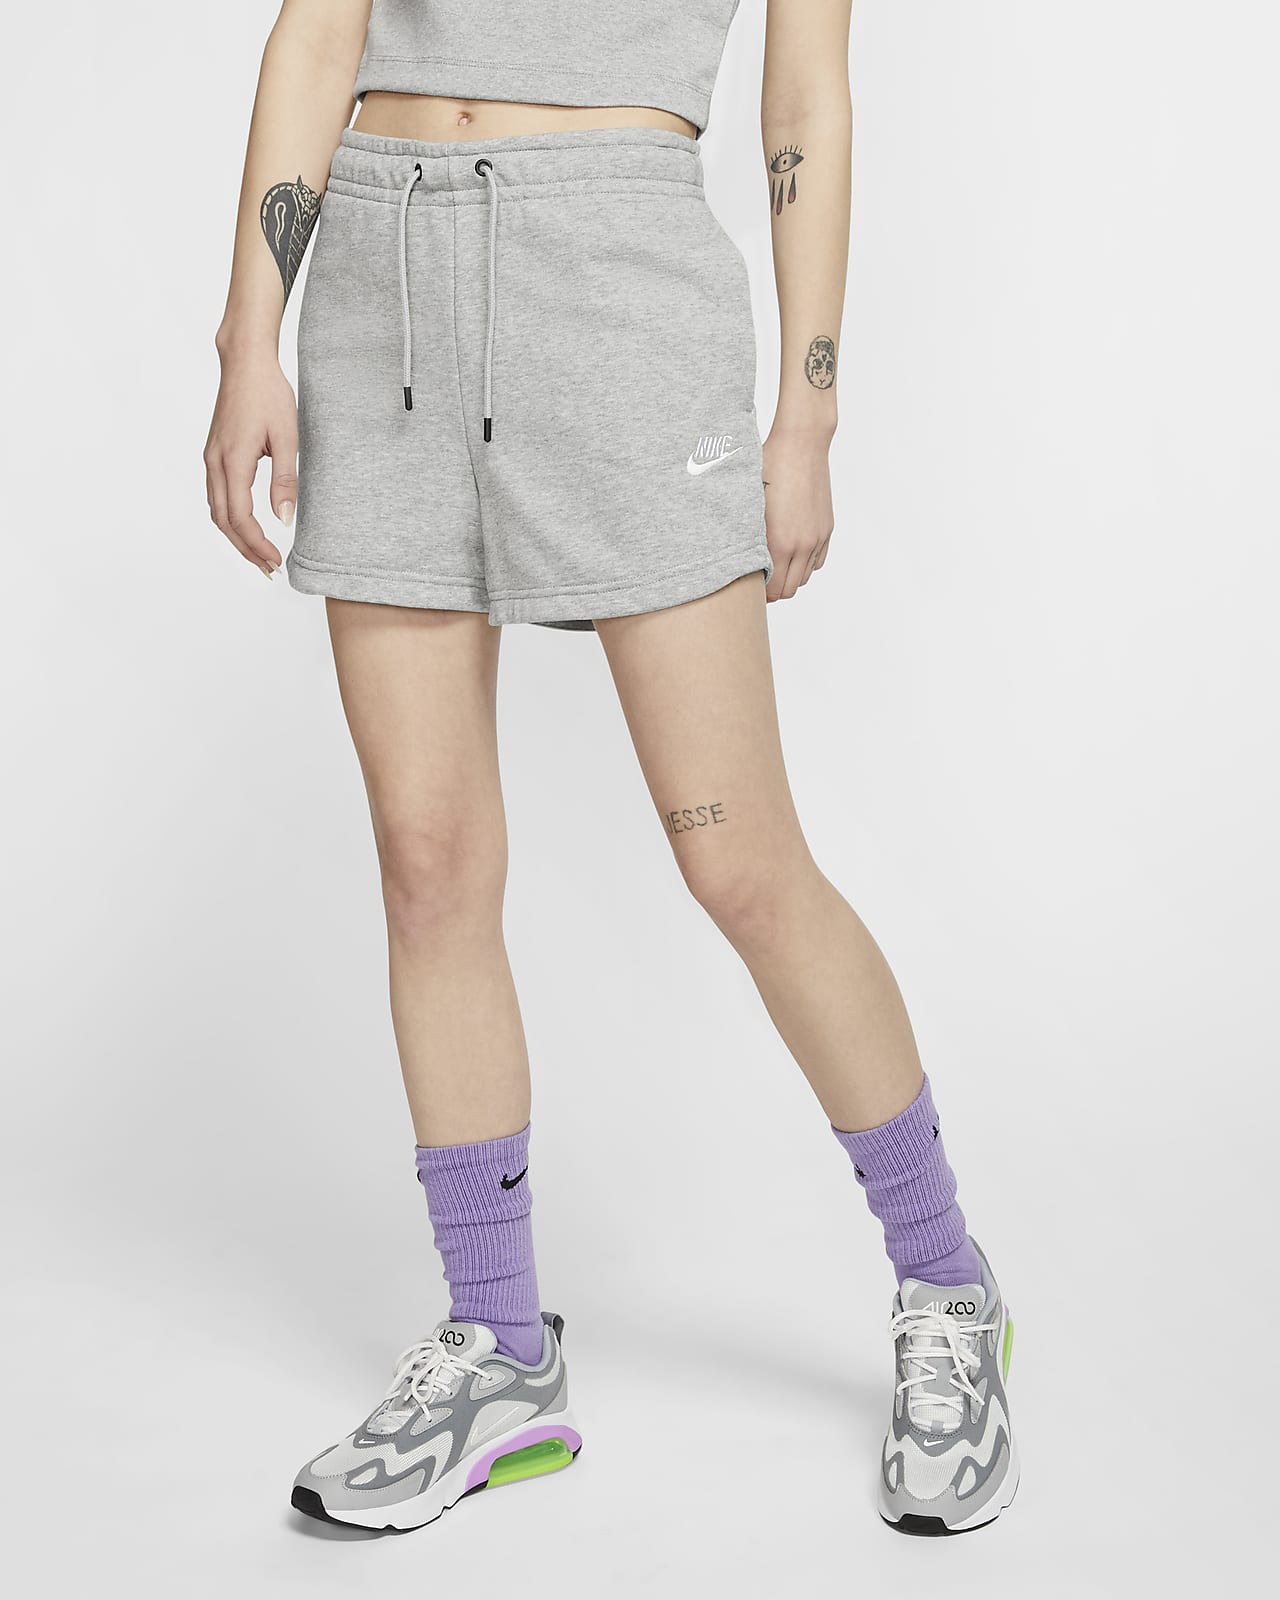 Shorts de French Terry para mujer Nike Sportswear Essential